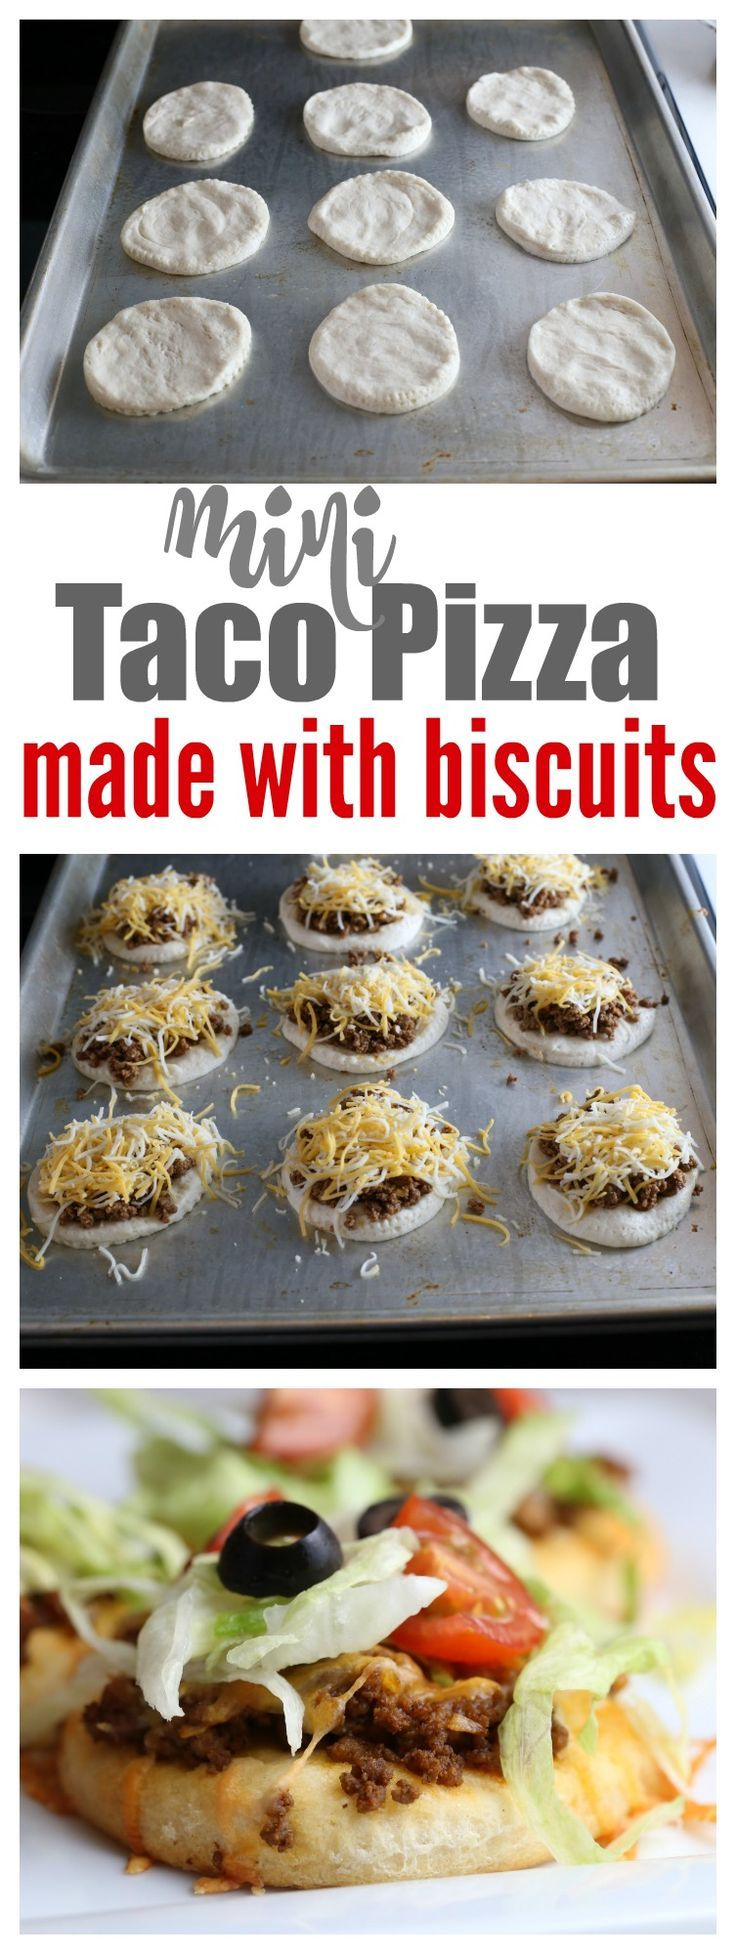 Mini Taco Pizza Recipe - Your Modern Family